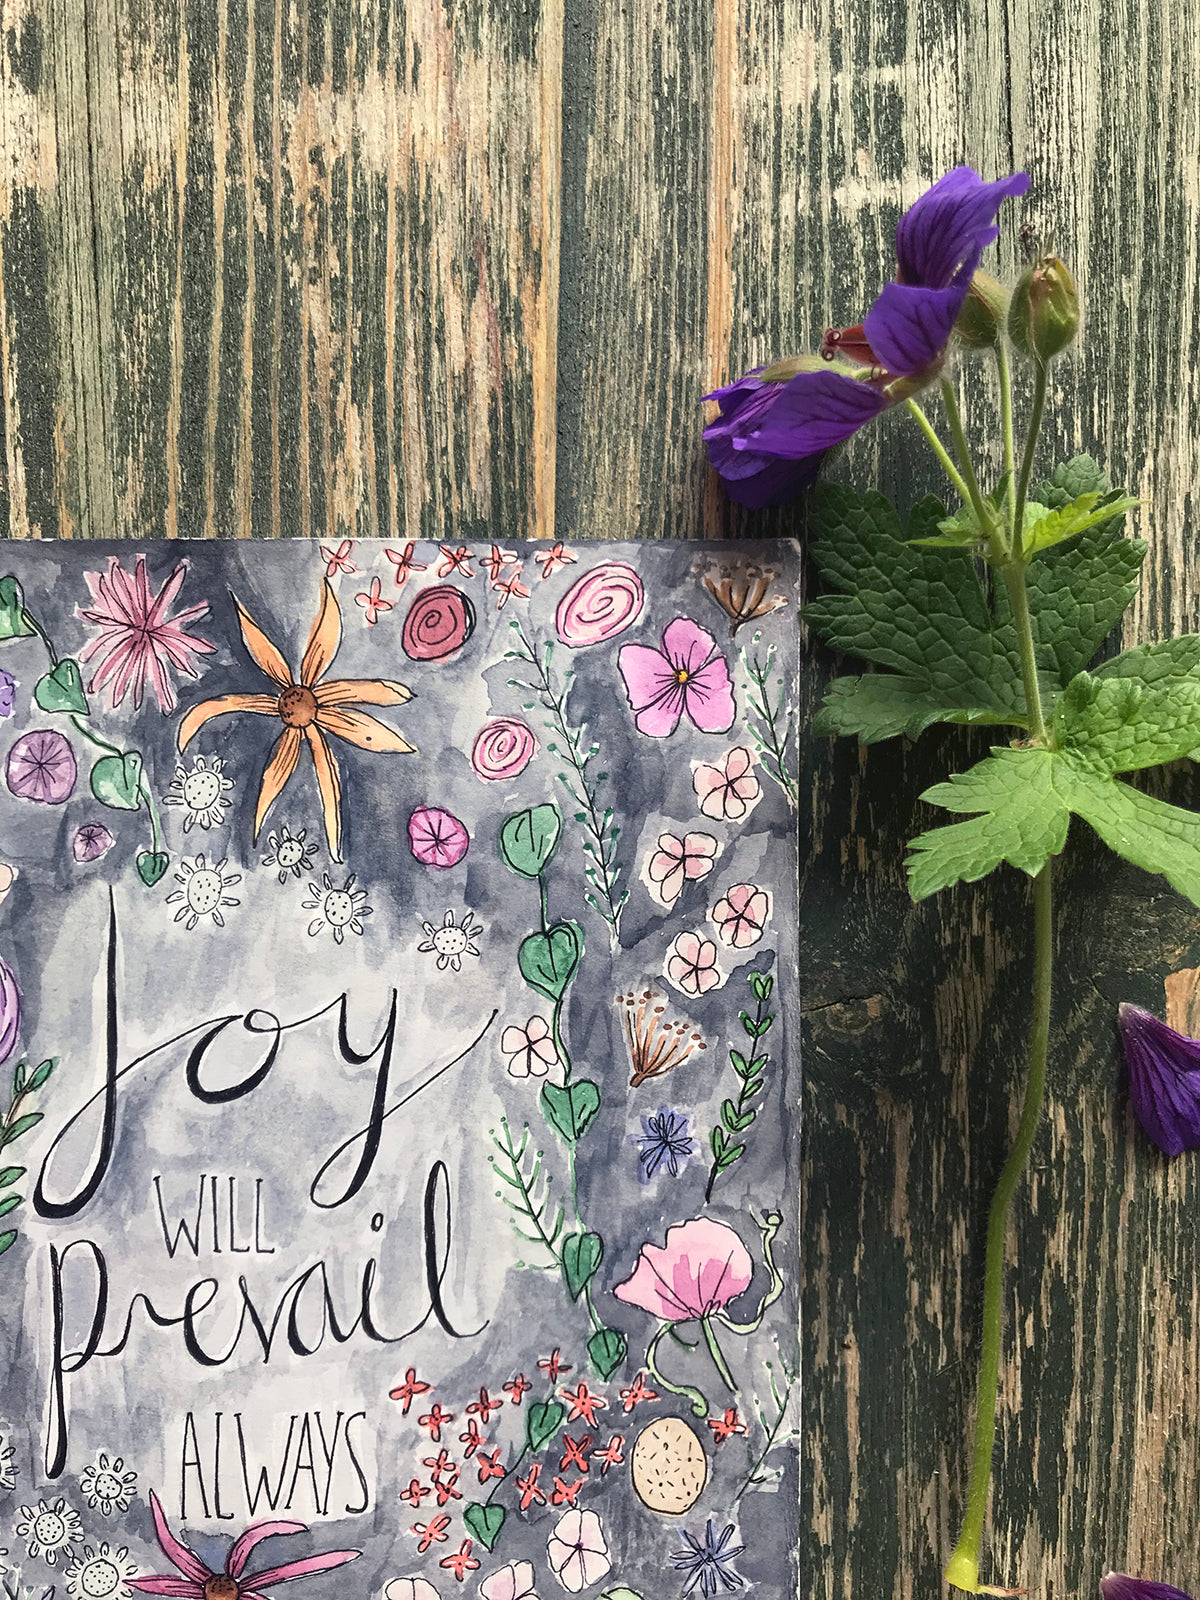 Joy Will Prevail Always ~ Original Painting